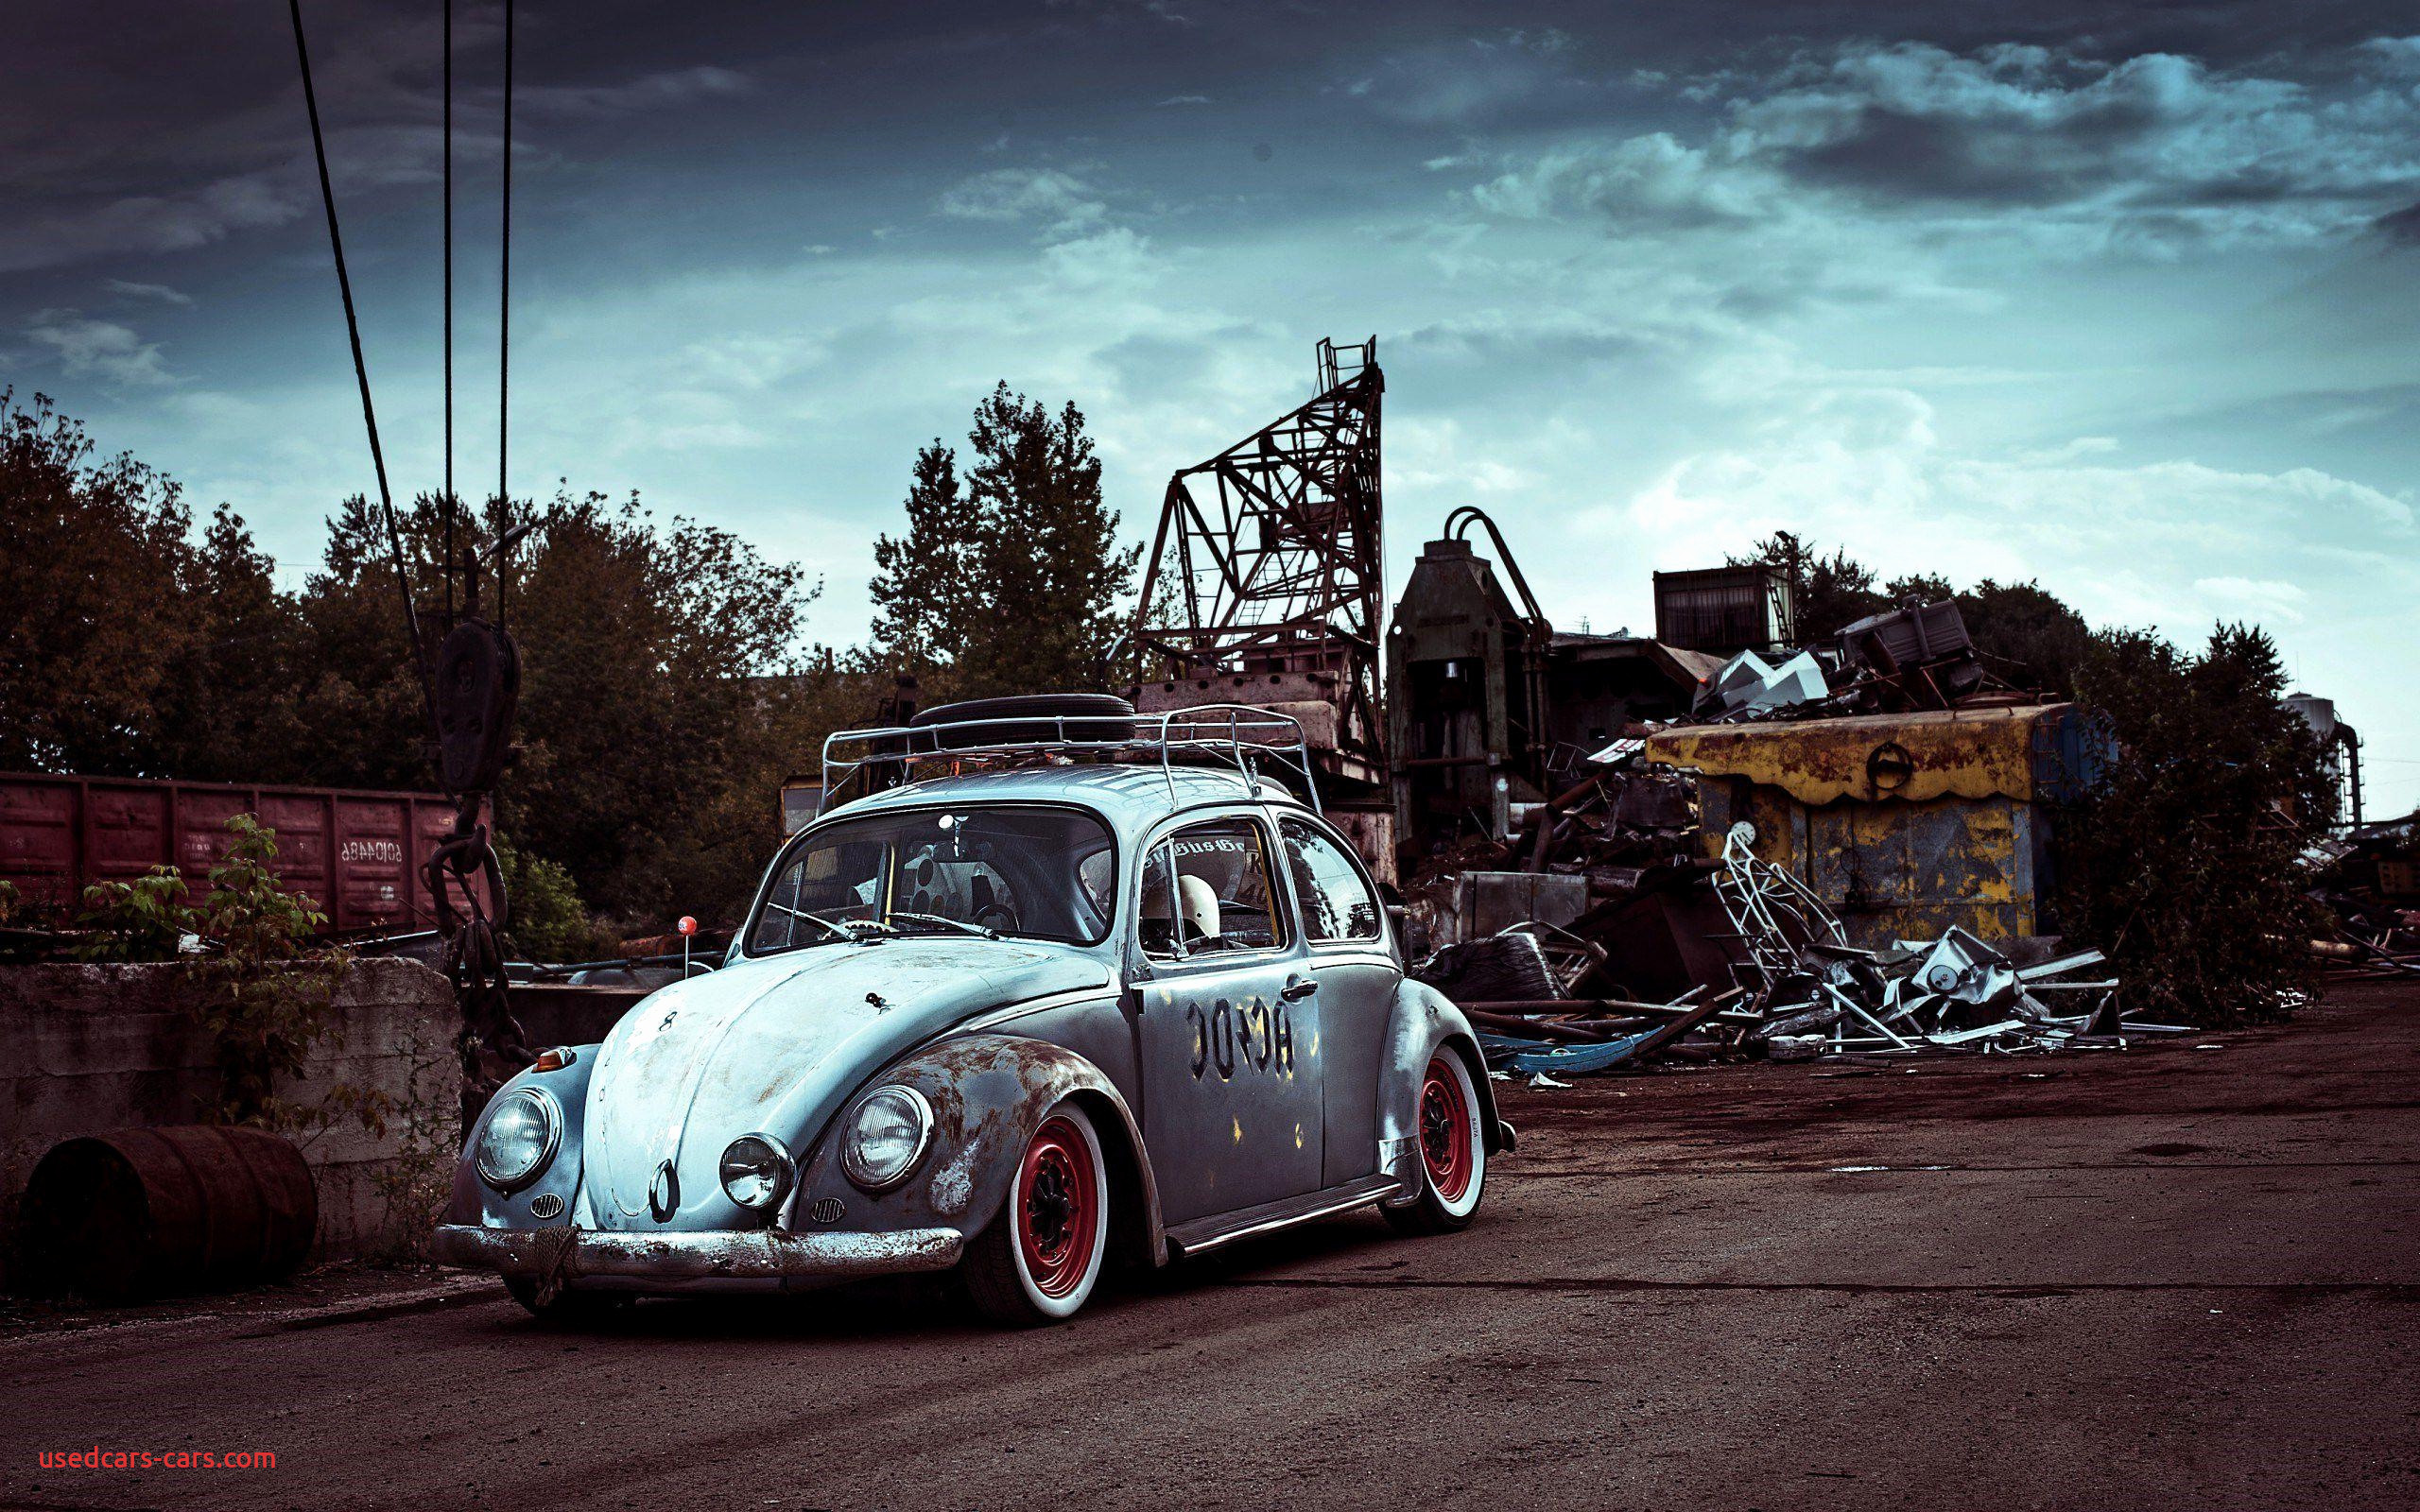 vw wallpaper fresh volkswagen beetle wallpapers wallpaper cave this month of vw wallpaper